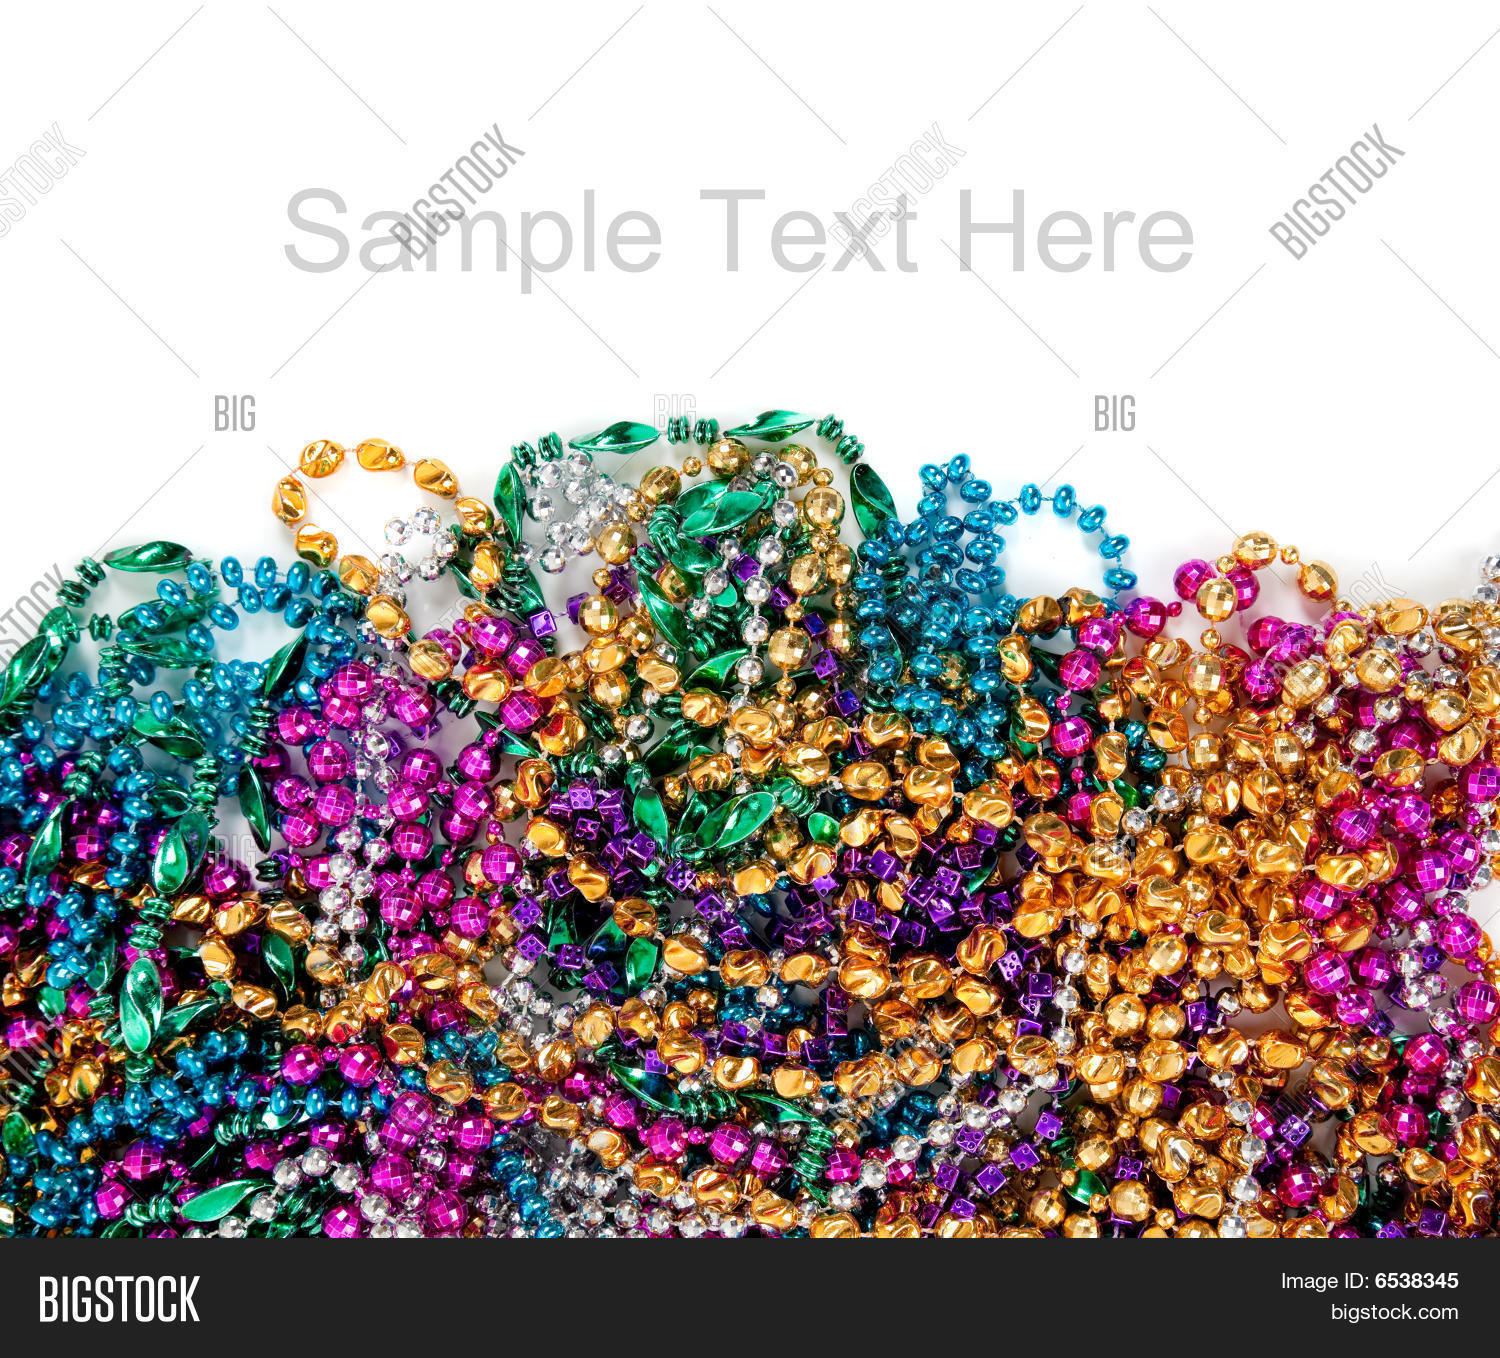 background,beads,blue,bold,carnival,celebrate,celebration,color,colorful,copy,fat,festival,festive,gold,gras,green,items,lint,louisiana,mardi,mardi gras,mardi gras background,mardi gras beads,necklace,new,no,nobody,object,one,orleans,party,pattern,pink,purple,silver,space,tradition,tuesday,white,yellow